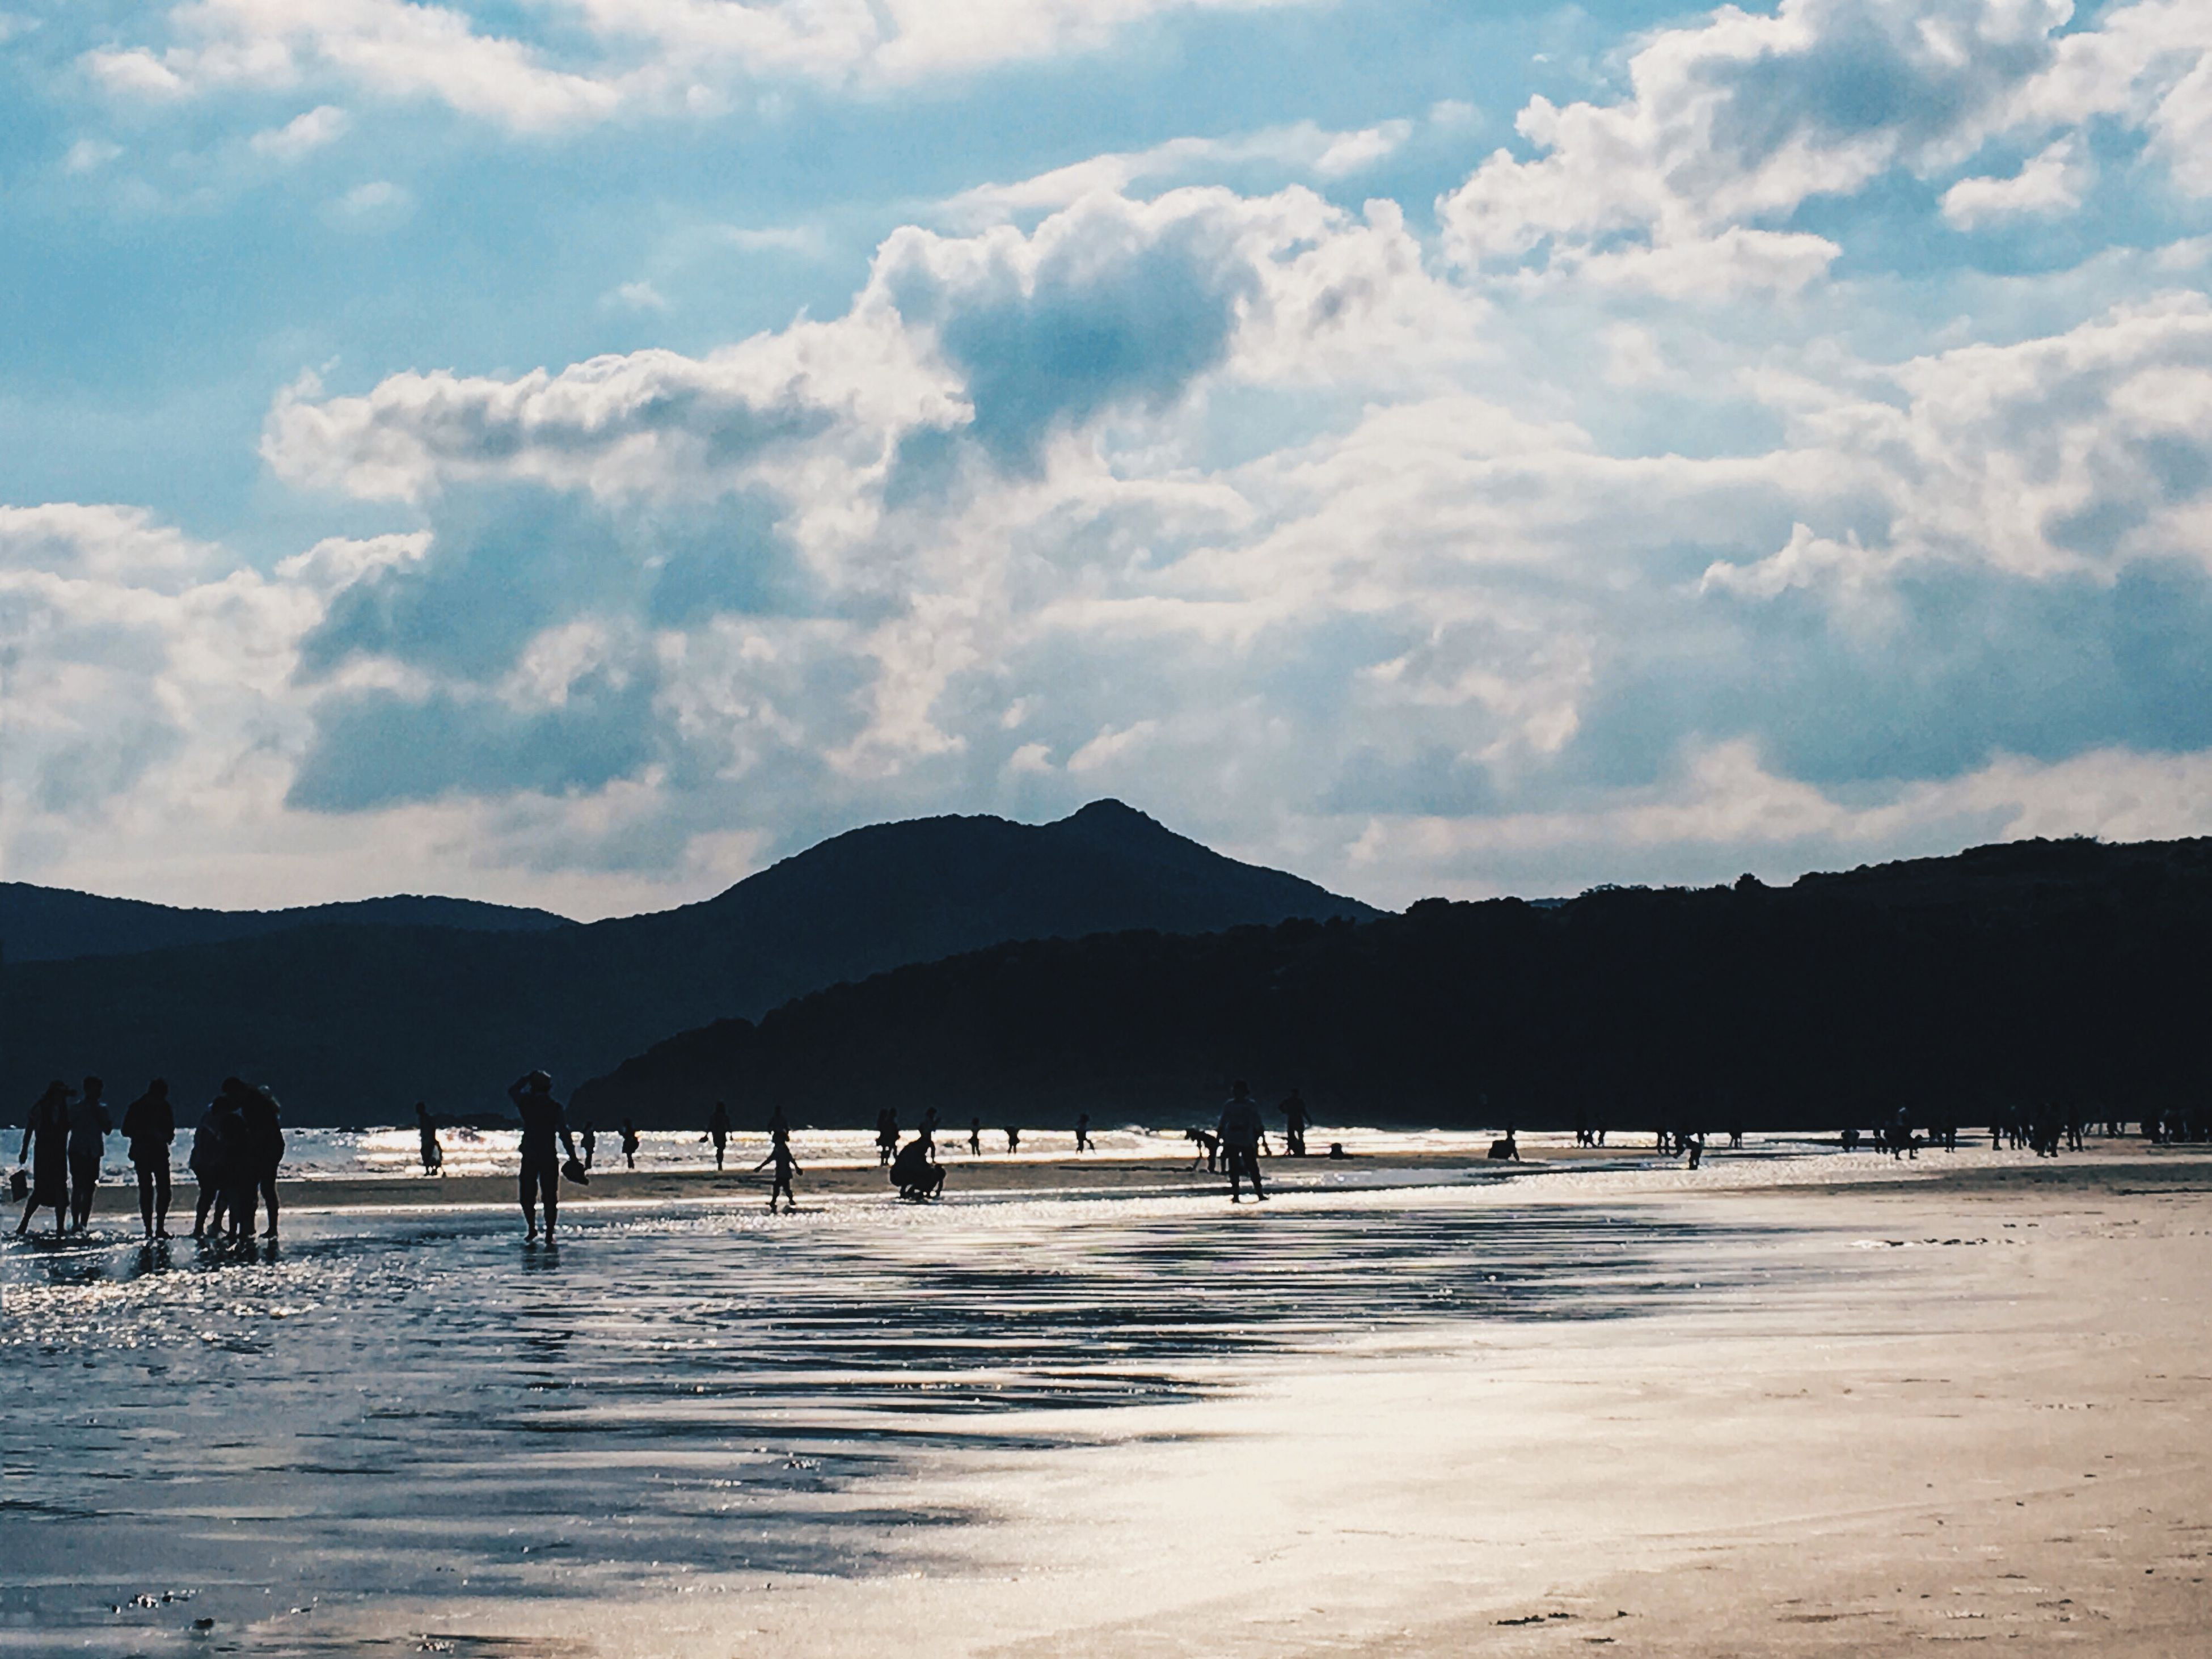 mountain, sky, large group of people, water, cloud - sky, beach, scenics, mountain range, beauty in nature, tranquil scene, nature, vacations, leisure activity, sea, tourism, tourist, silhouette, tranquility, sand